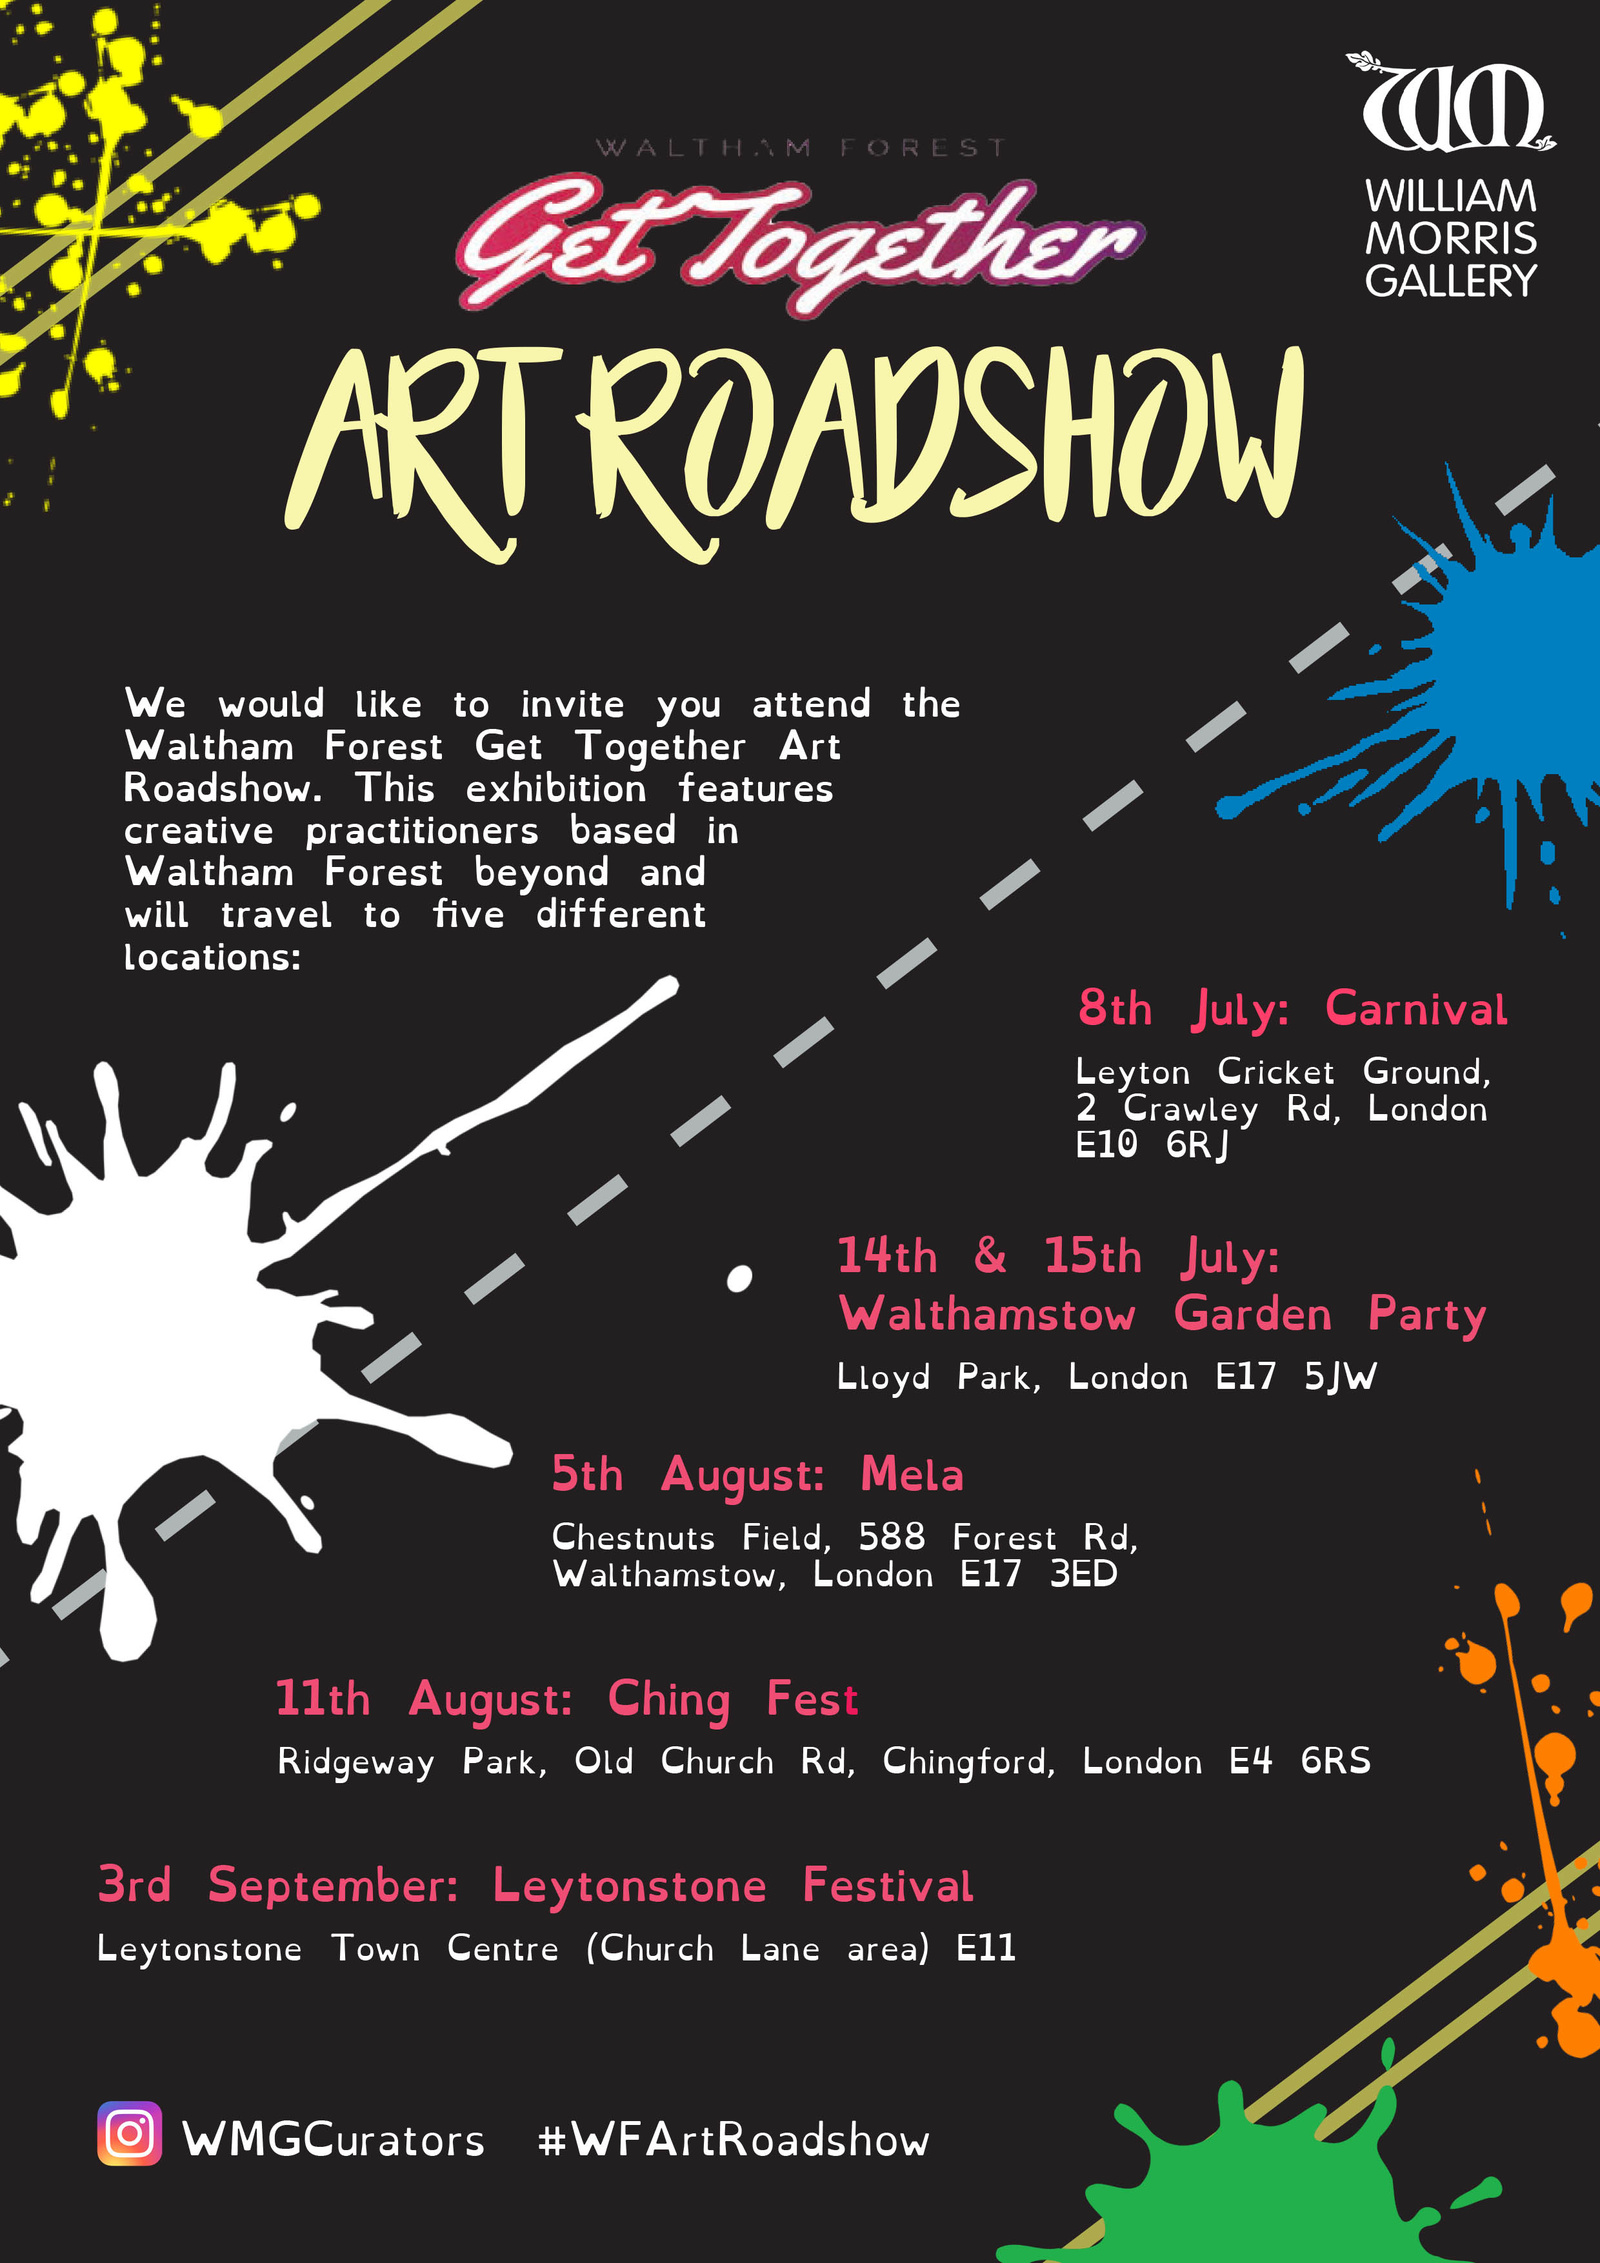 Get Together Art Roadshow